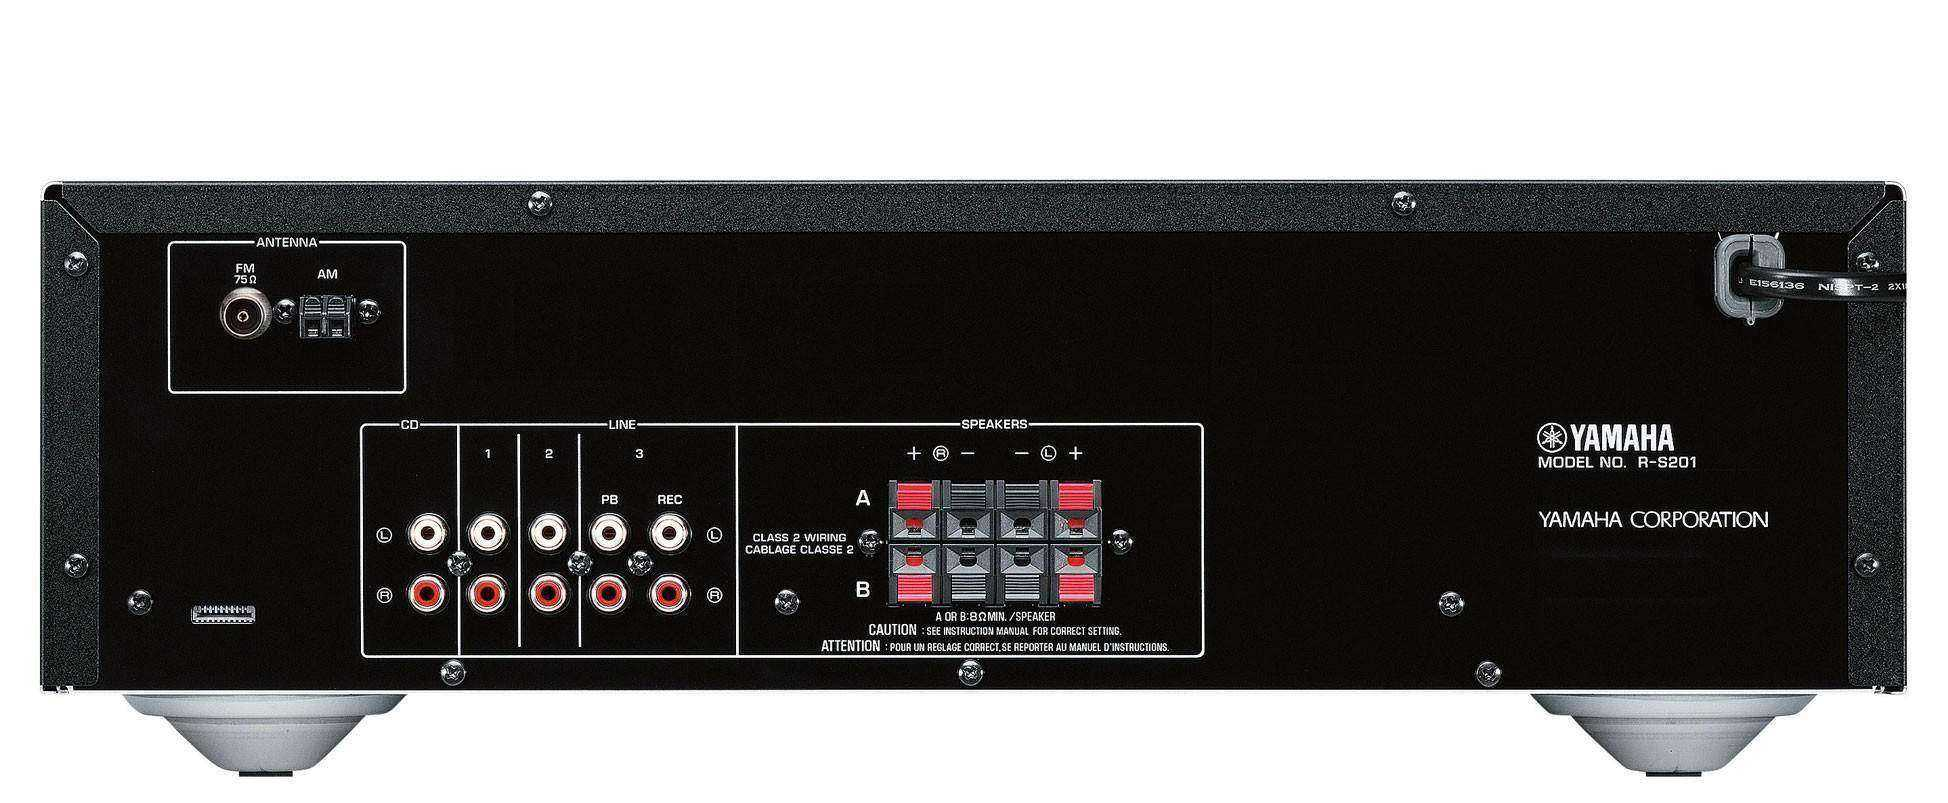 yamaha r 1000 receiver review